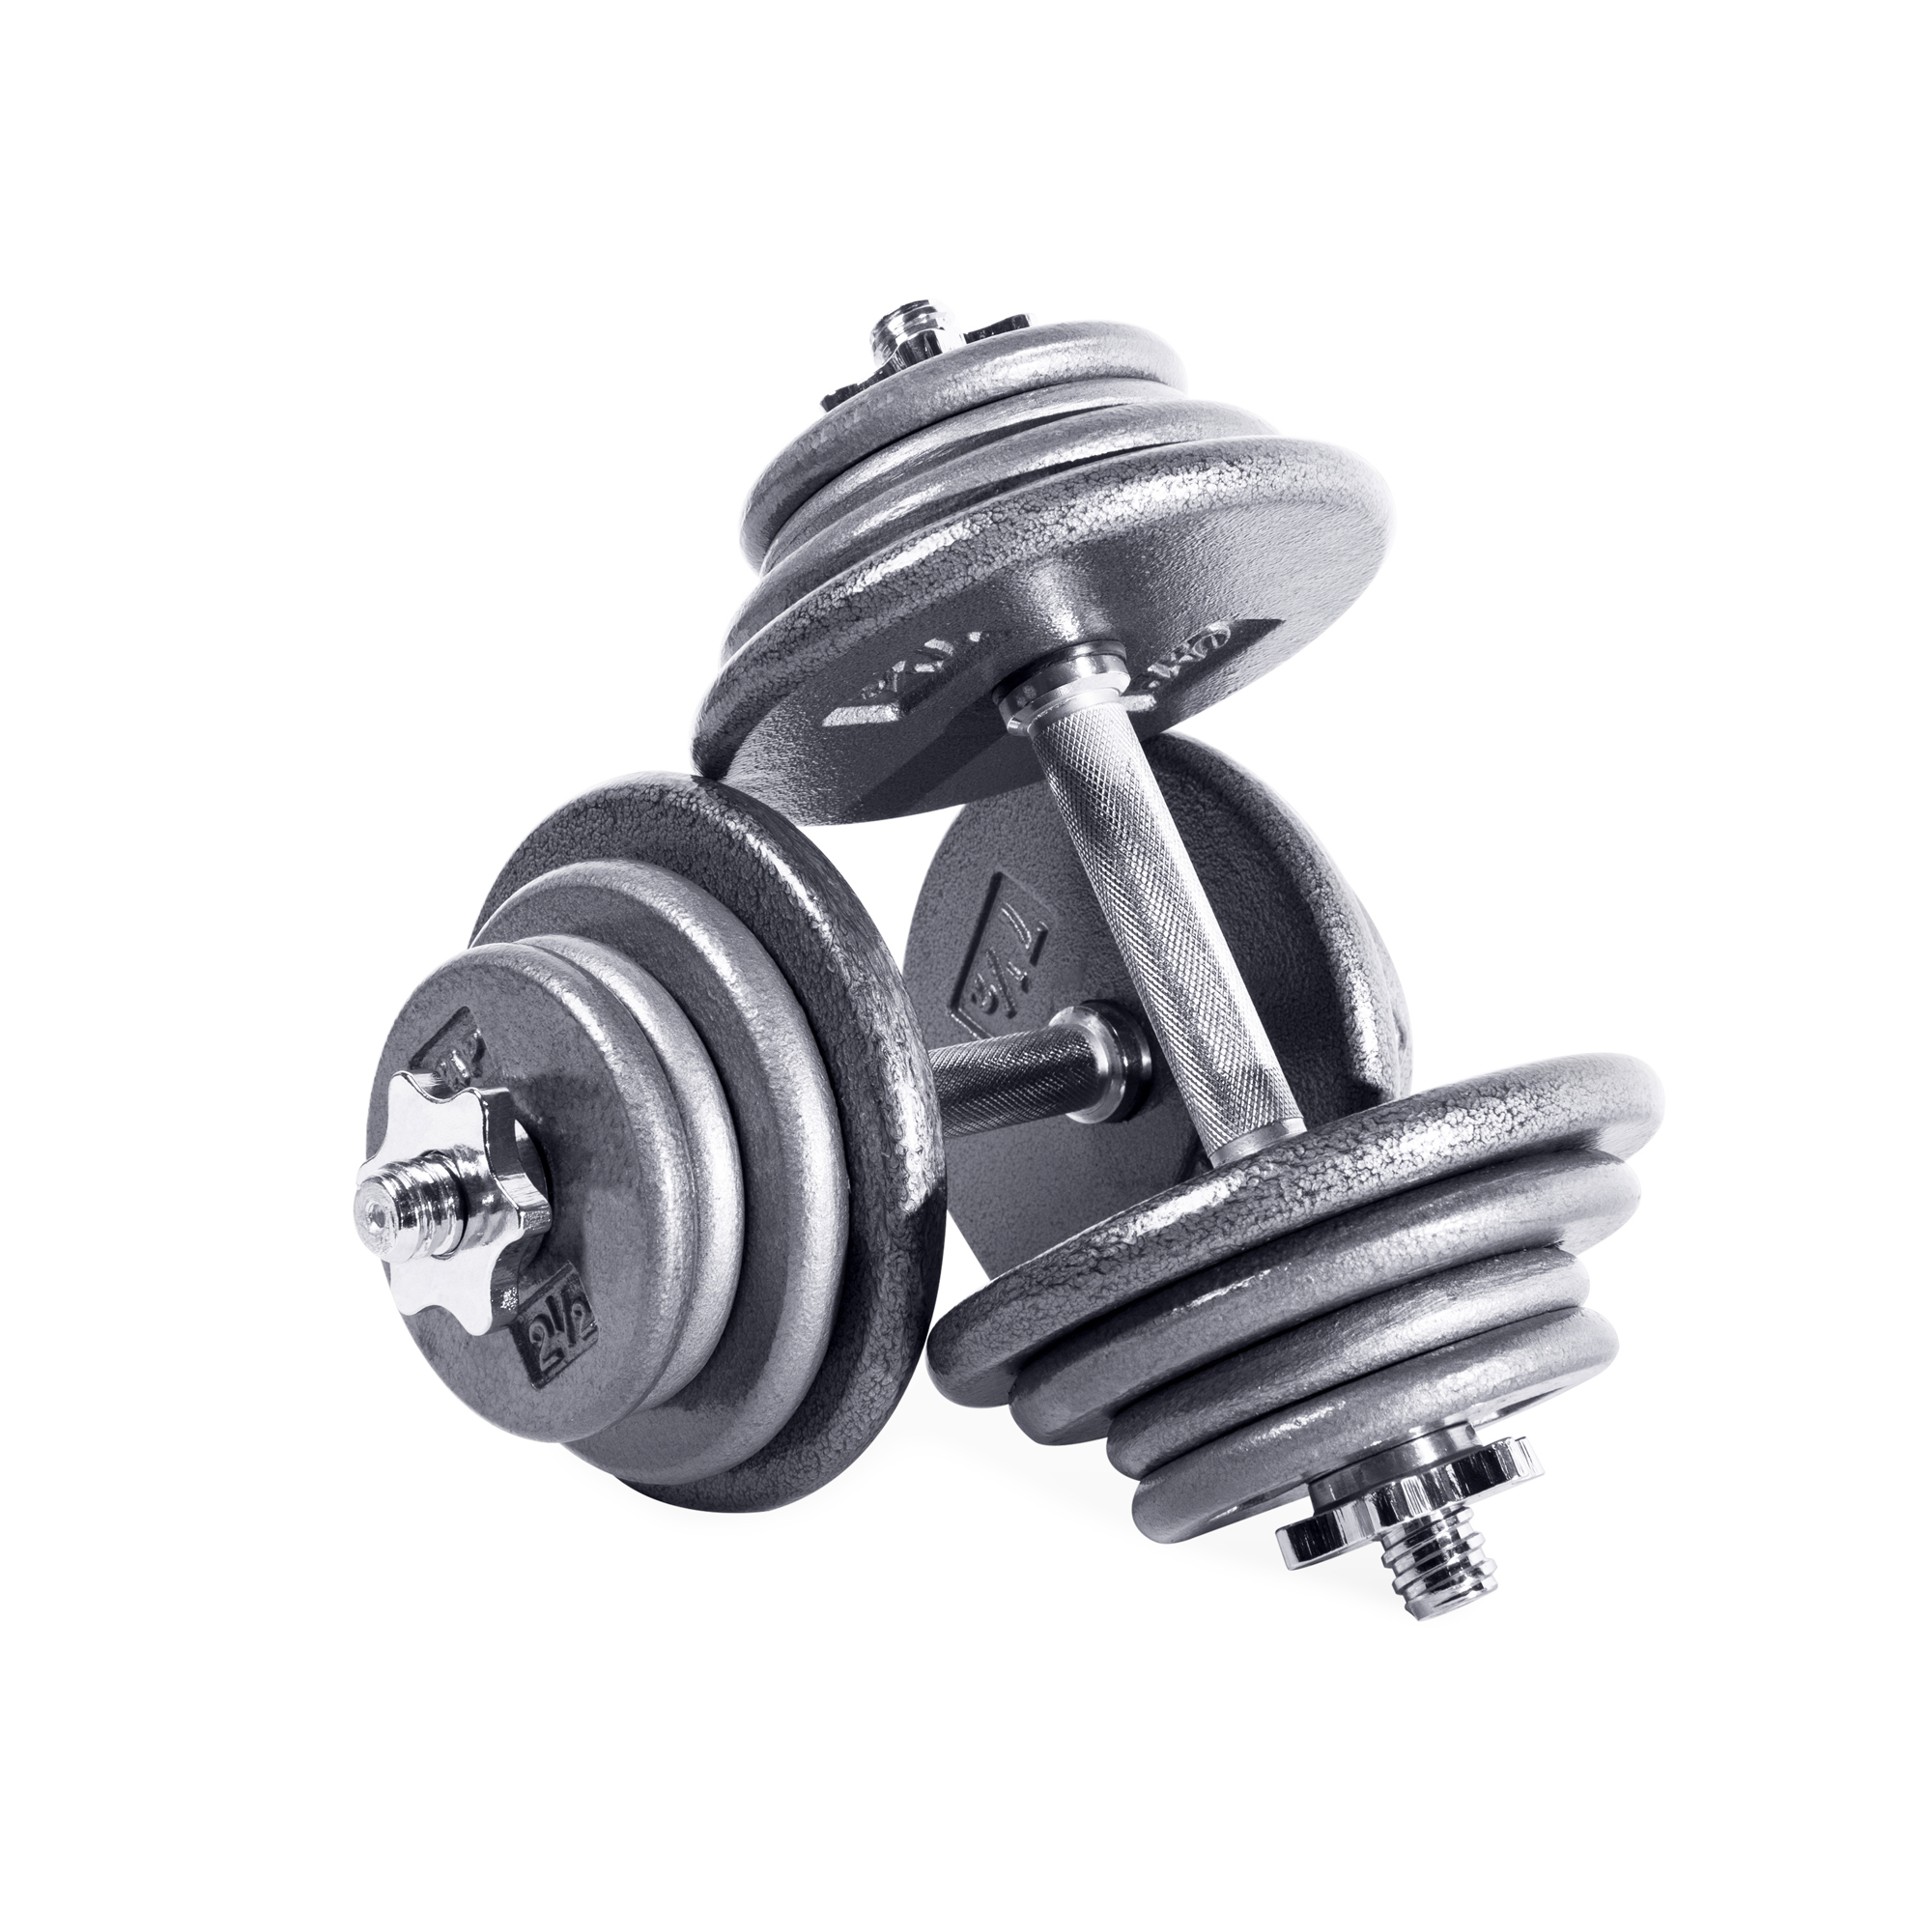 CAP Barbell 75 lb Adjustable Dumbbell Set - Pair